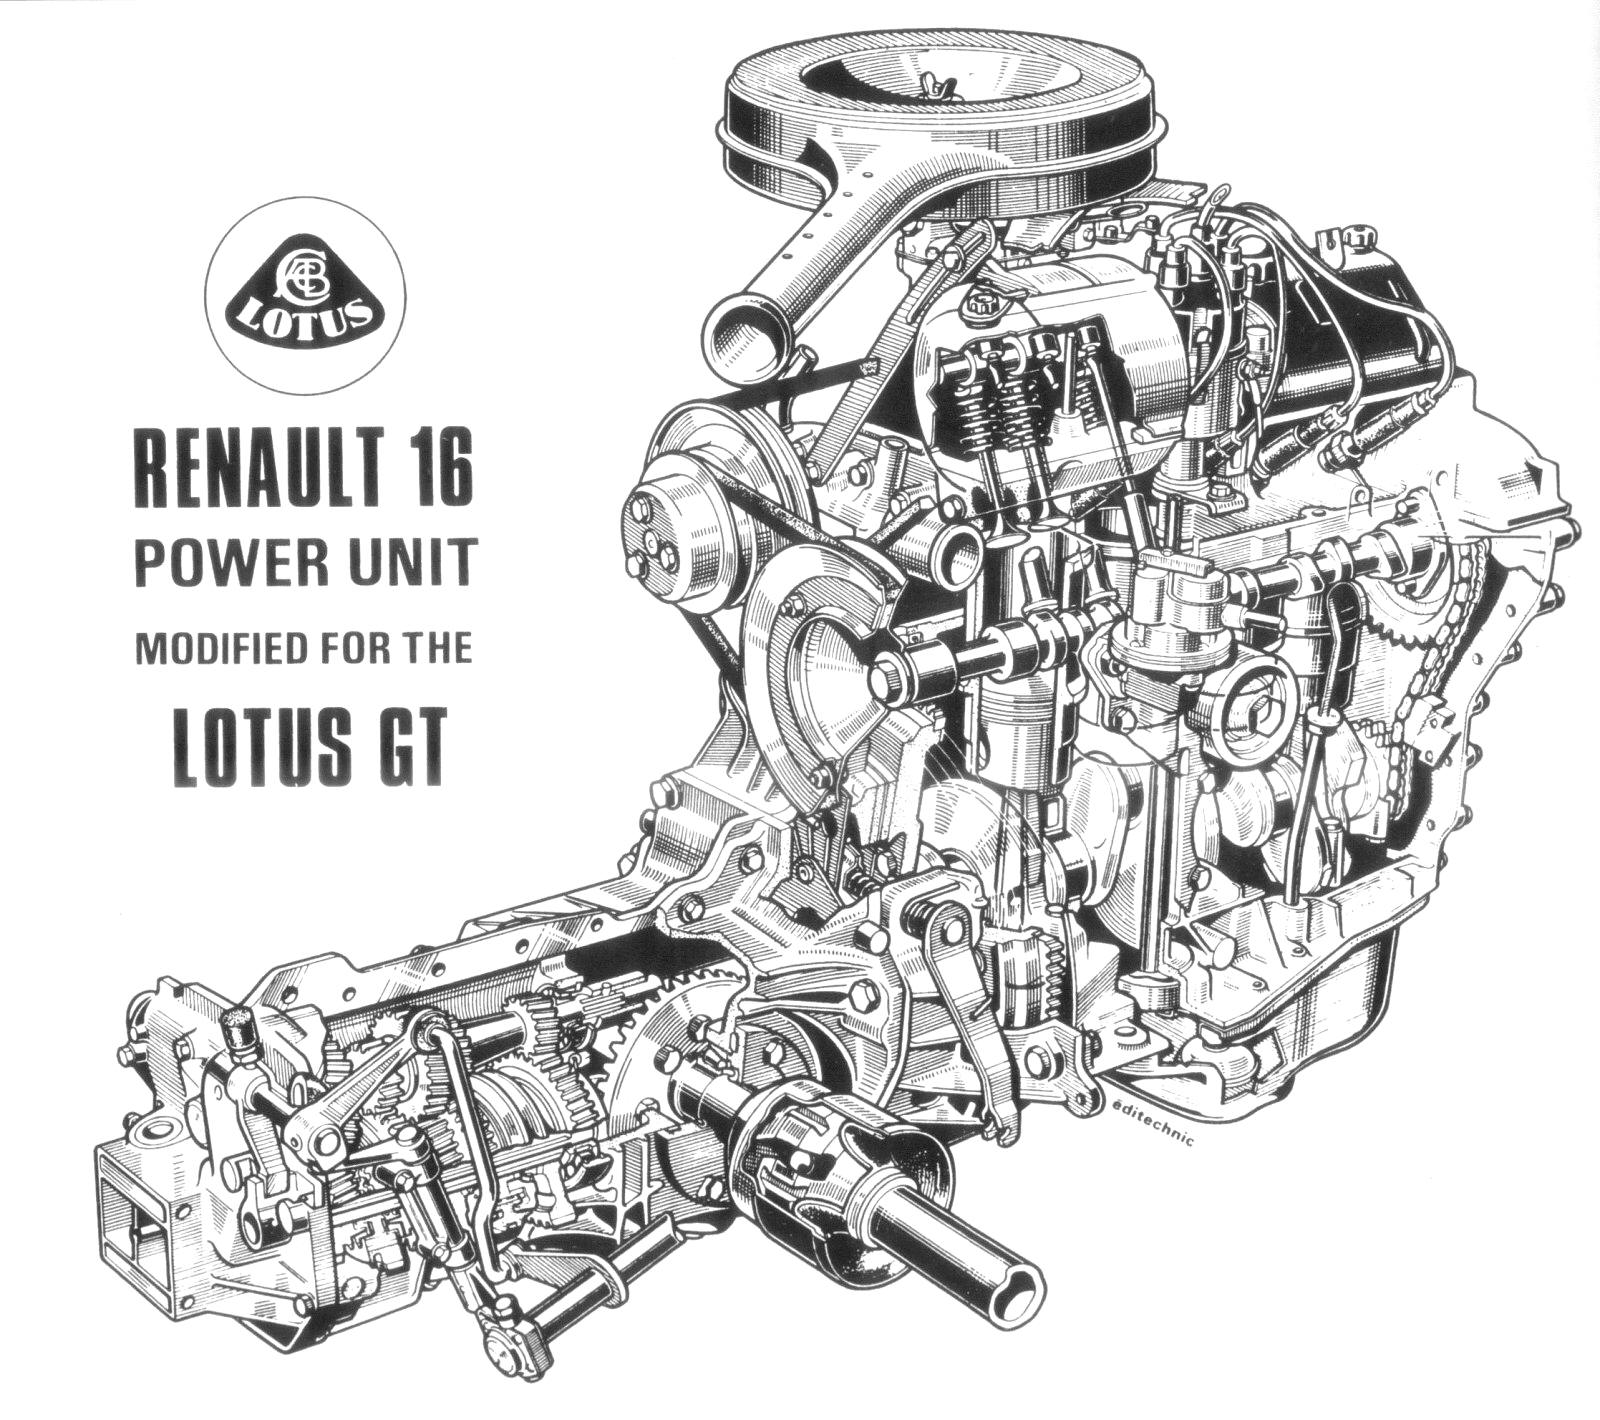 Lotus-Renault_engine.jpg